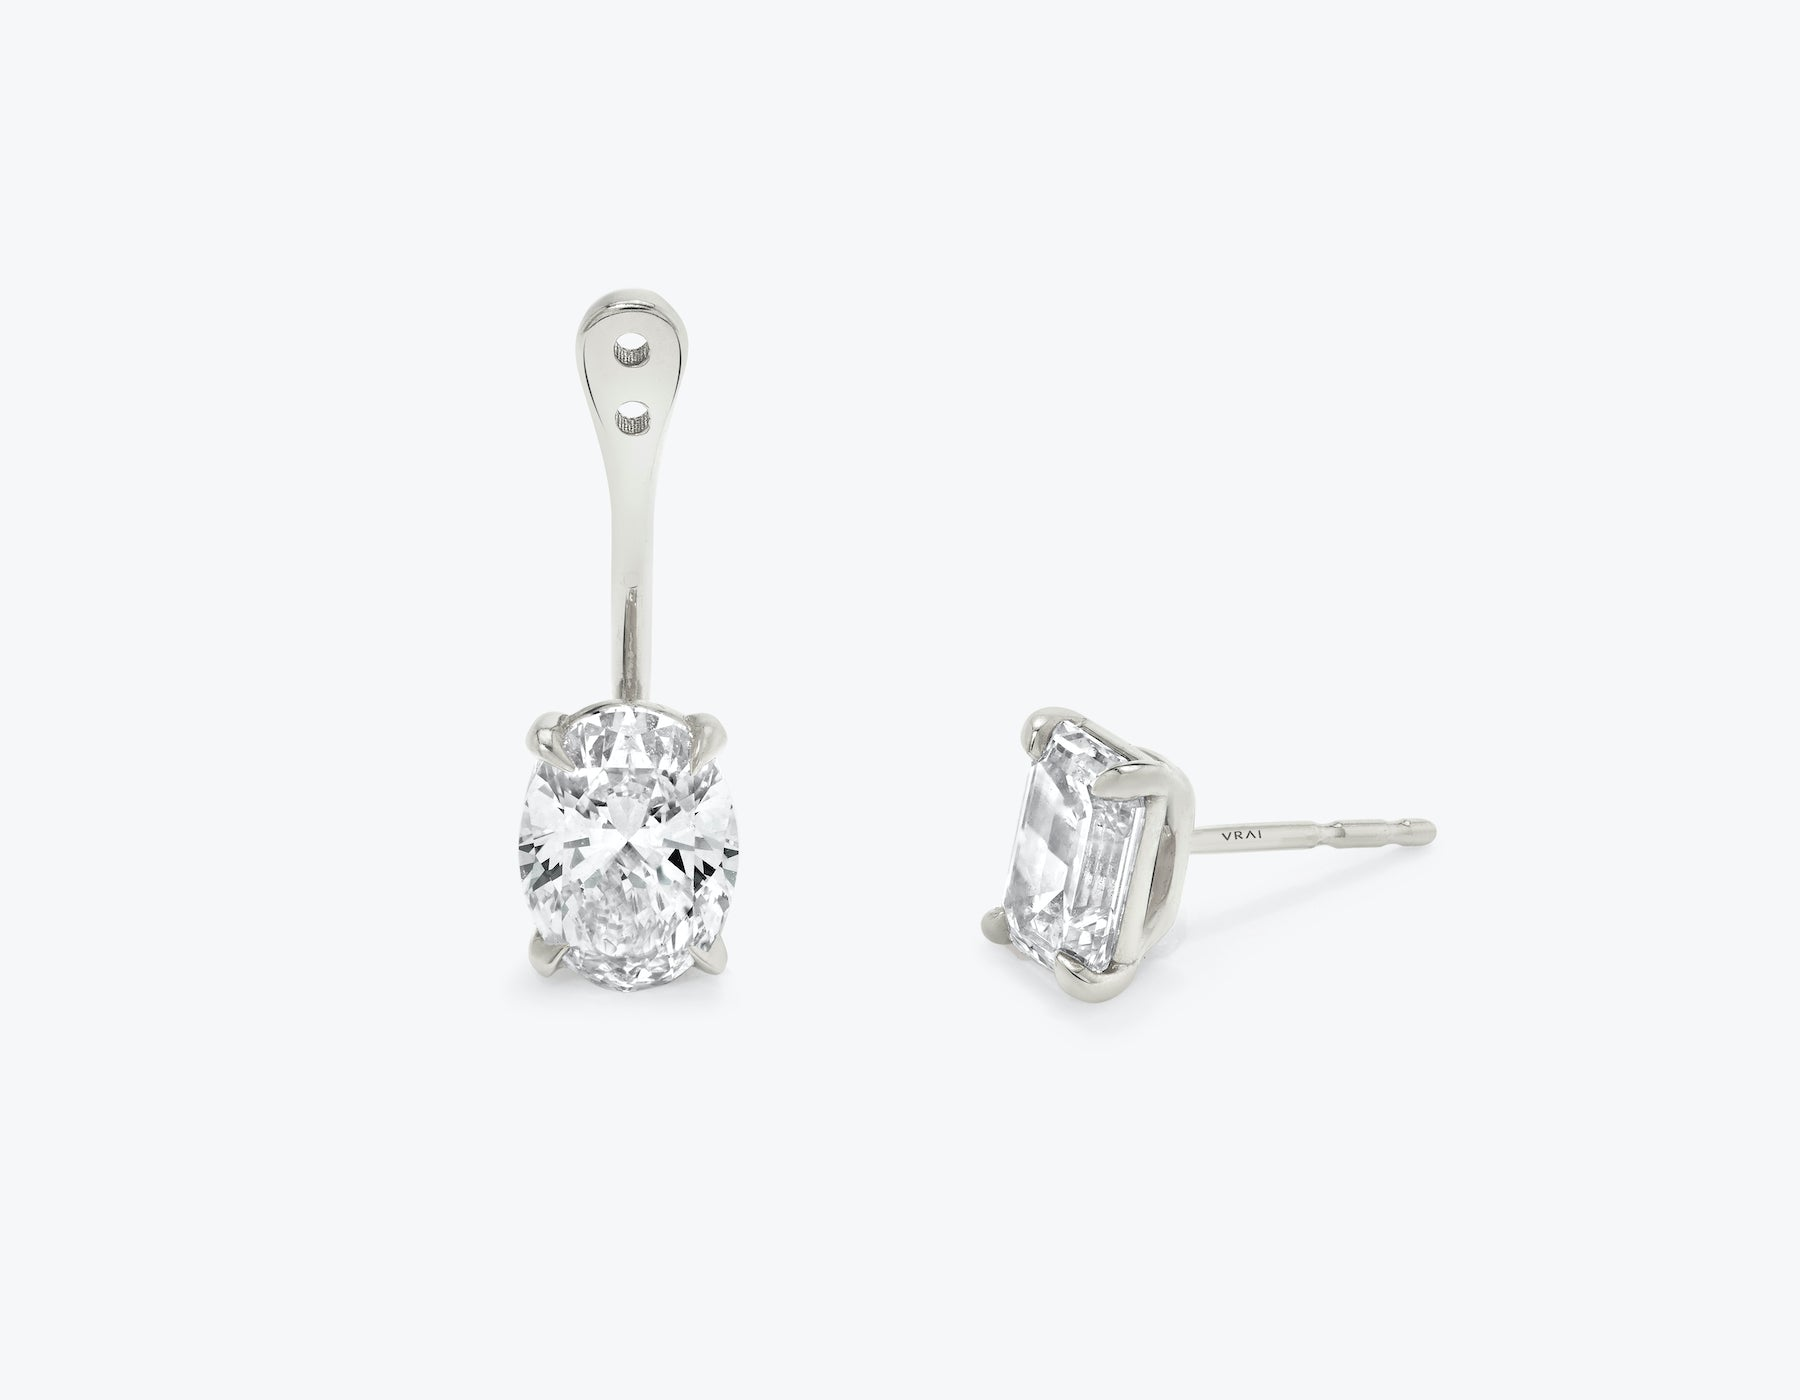 Vrai solitaire oval diamond drop ear jackets made in 14k solid gold with sustainably created diamonds with round solitaire diamond stud, 14K White Gold